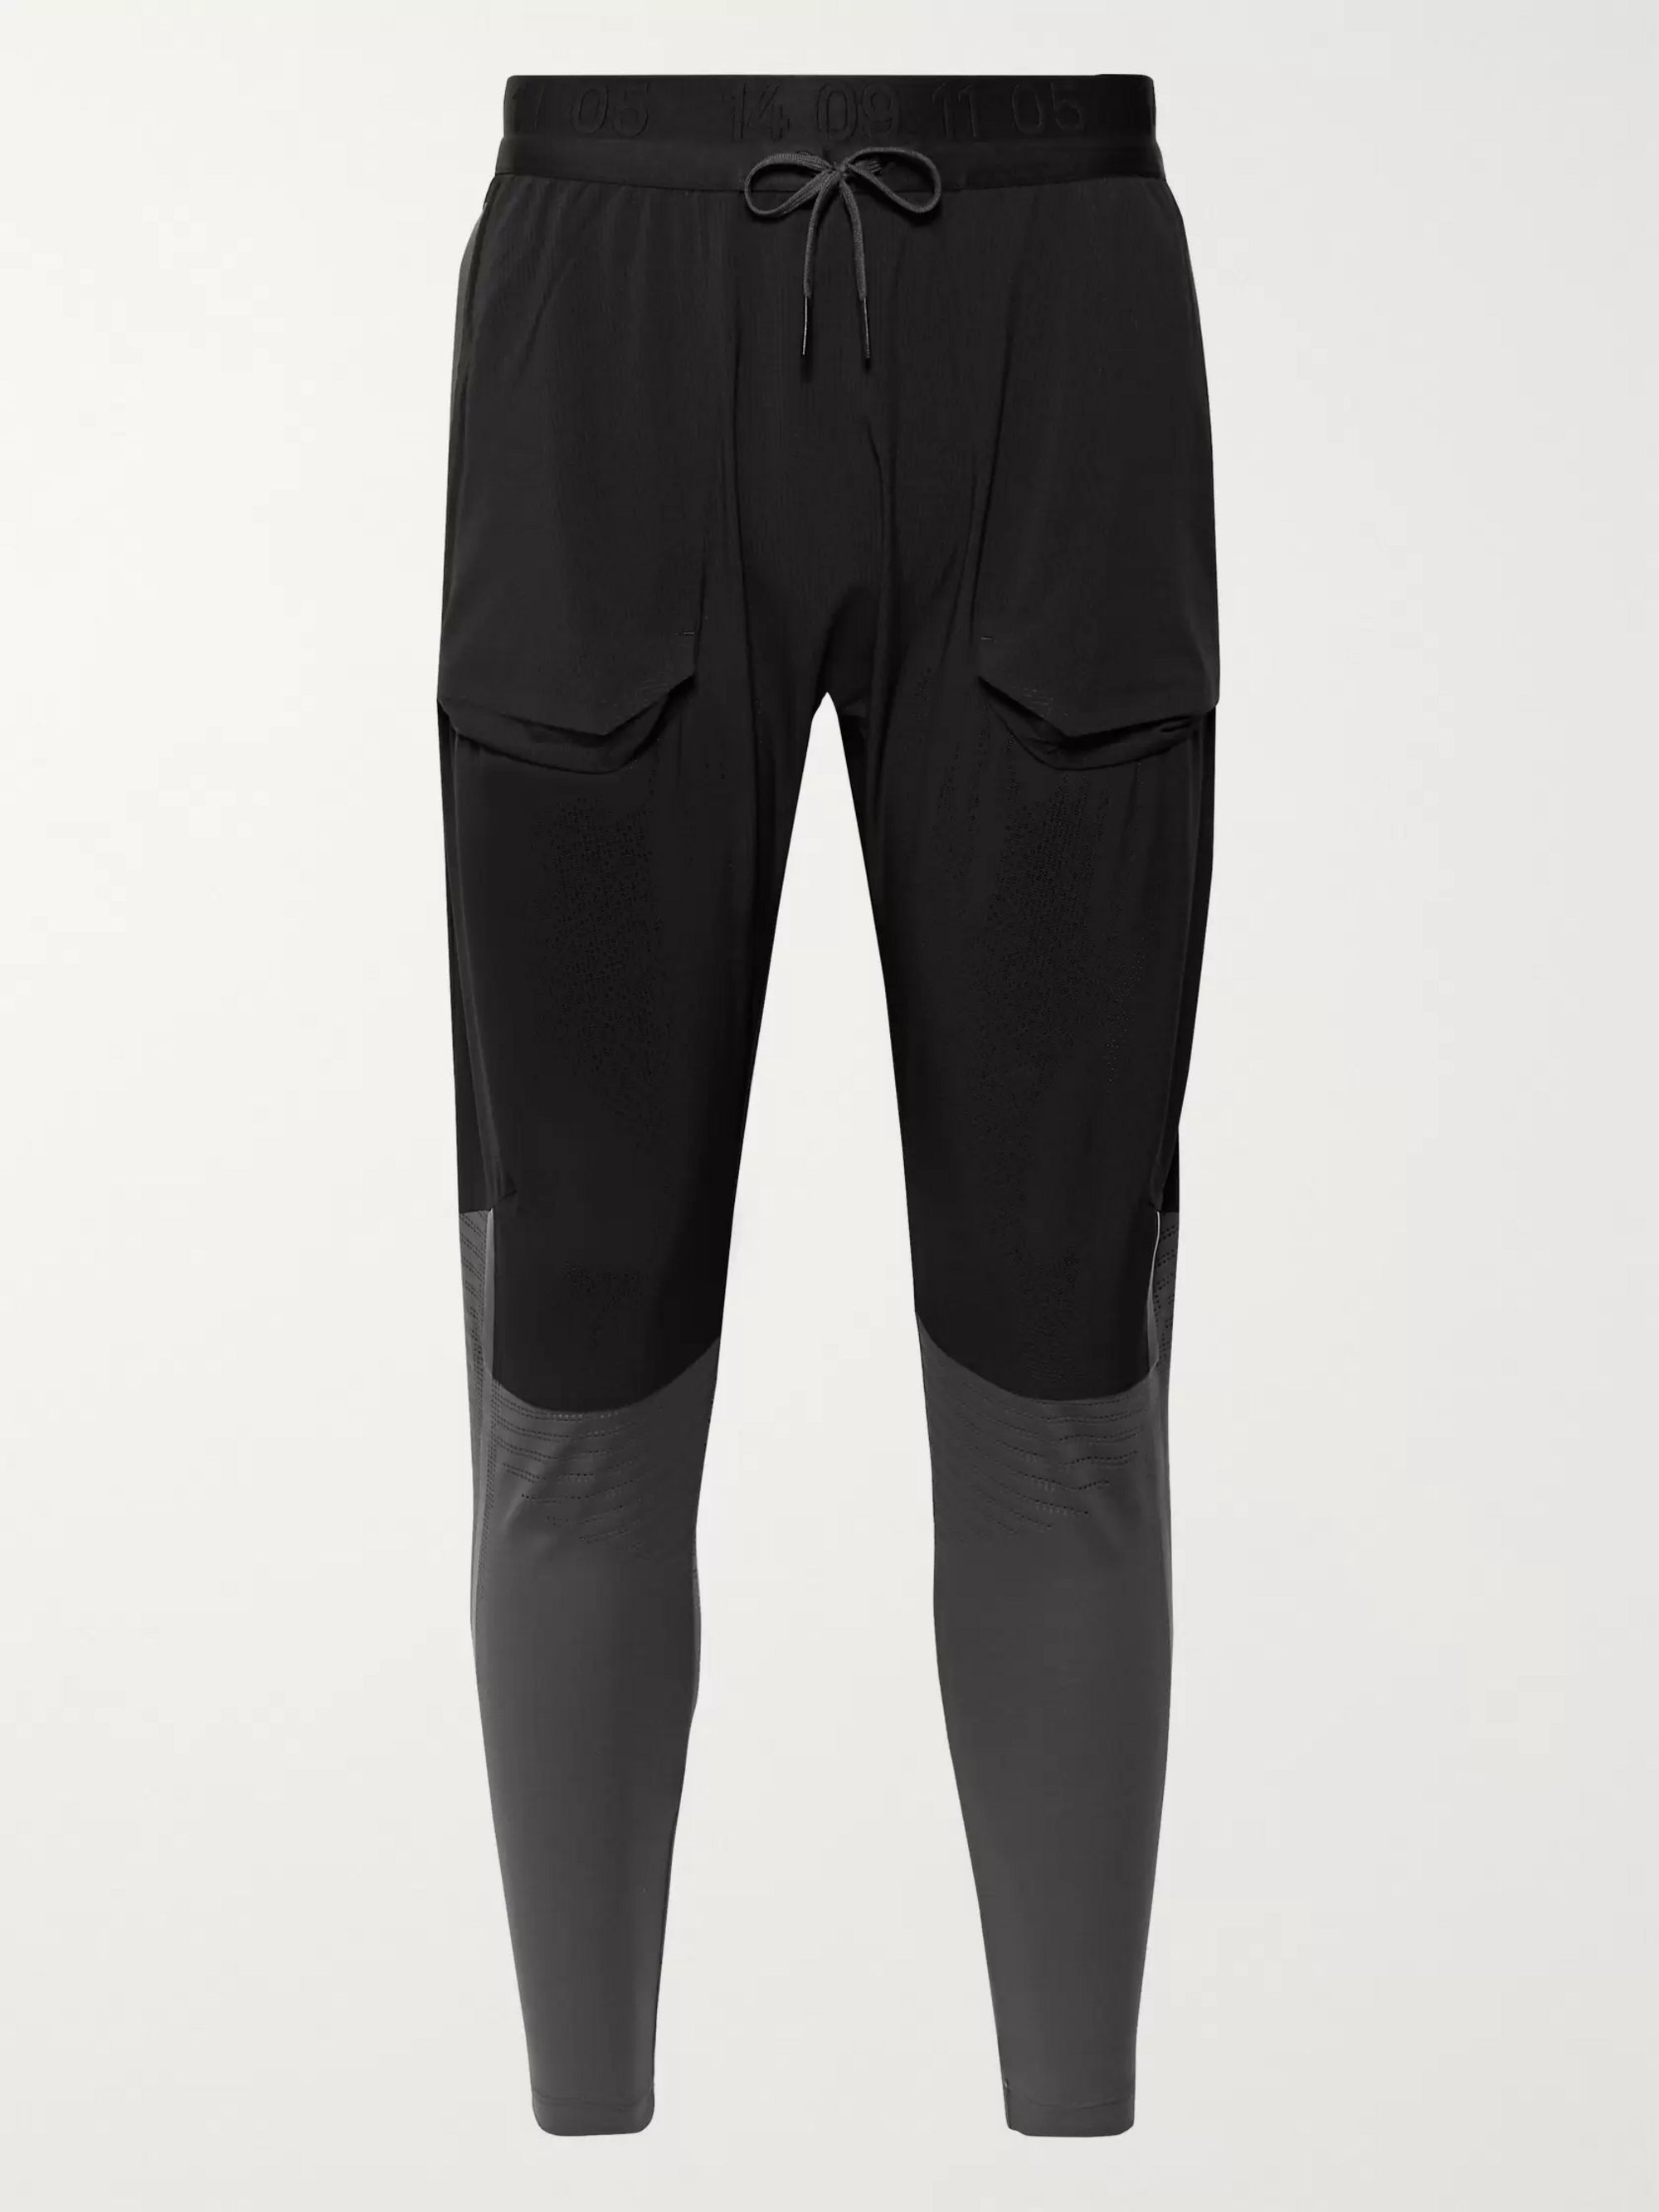 Nike Running Tech Pack Ripstop and Mesh Tights